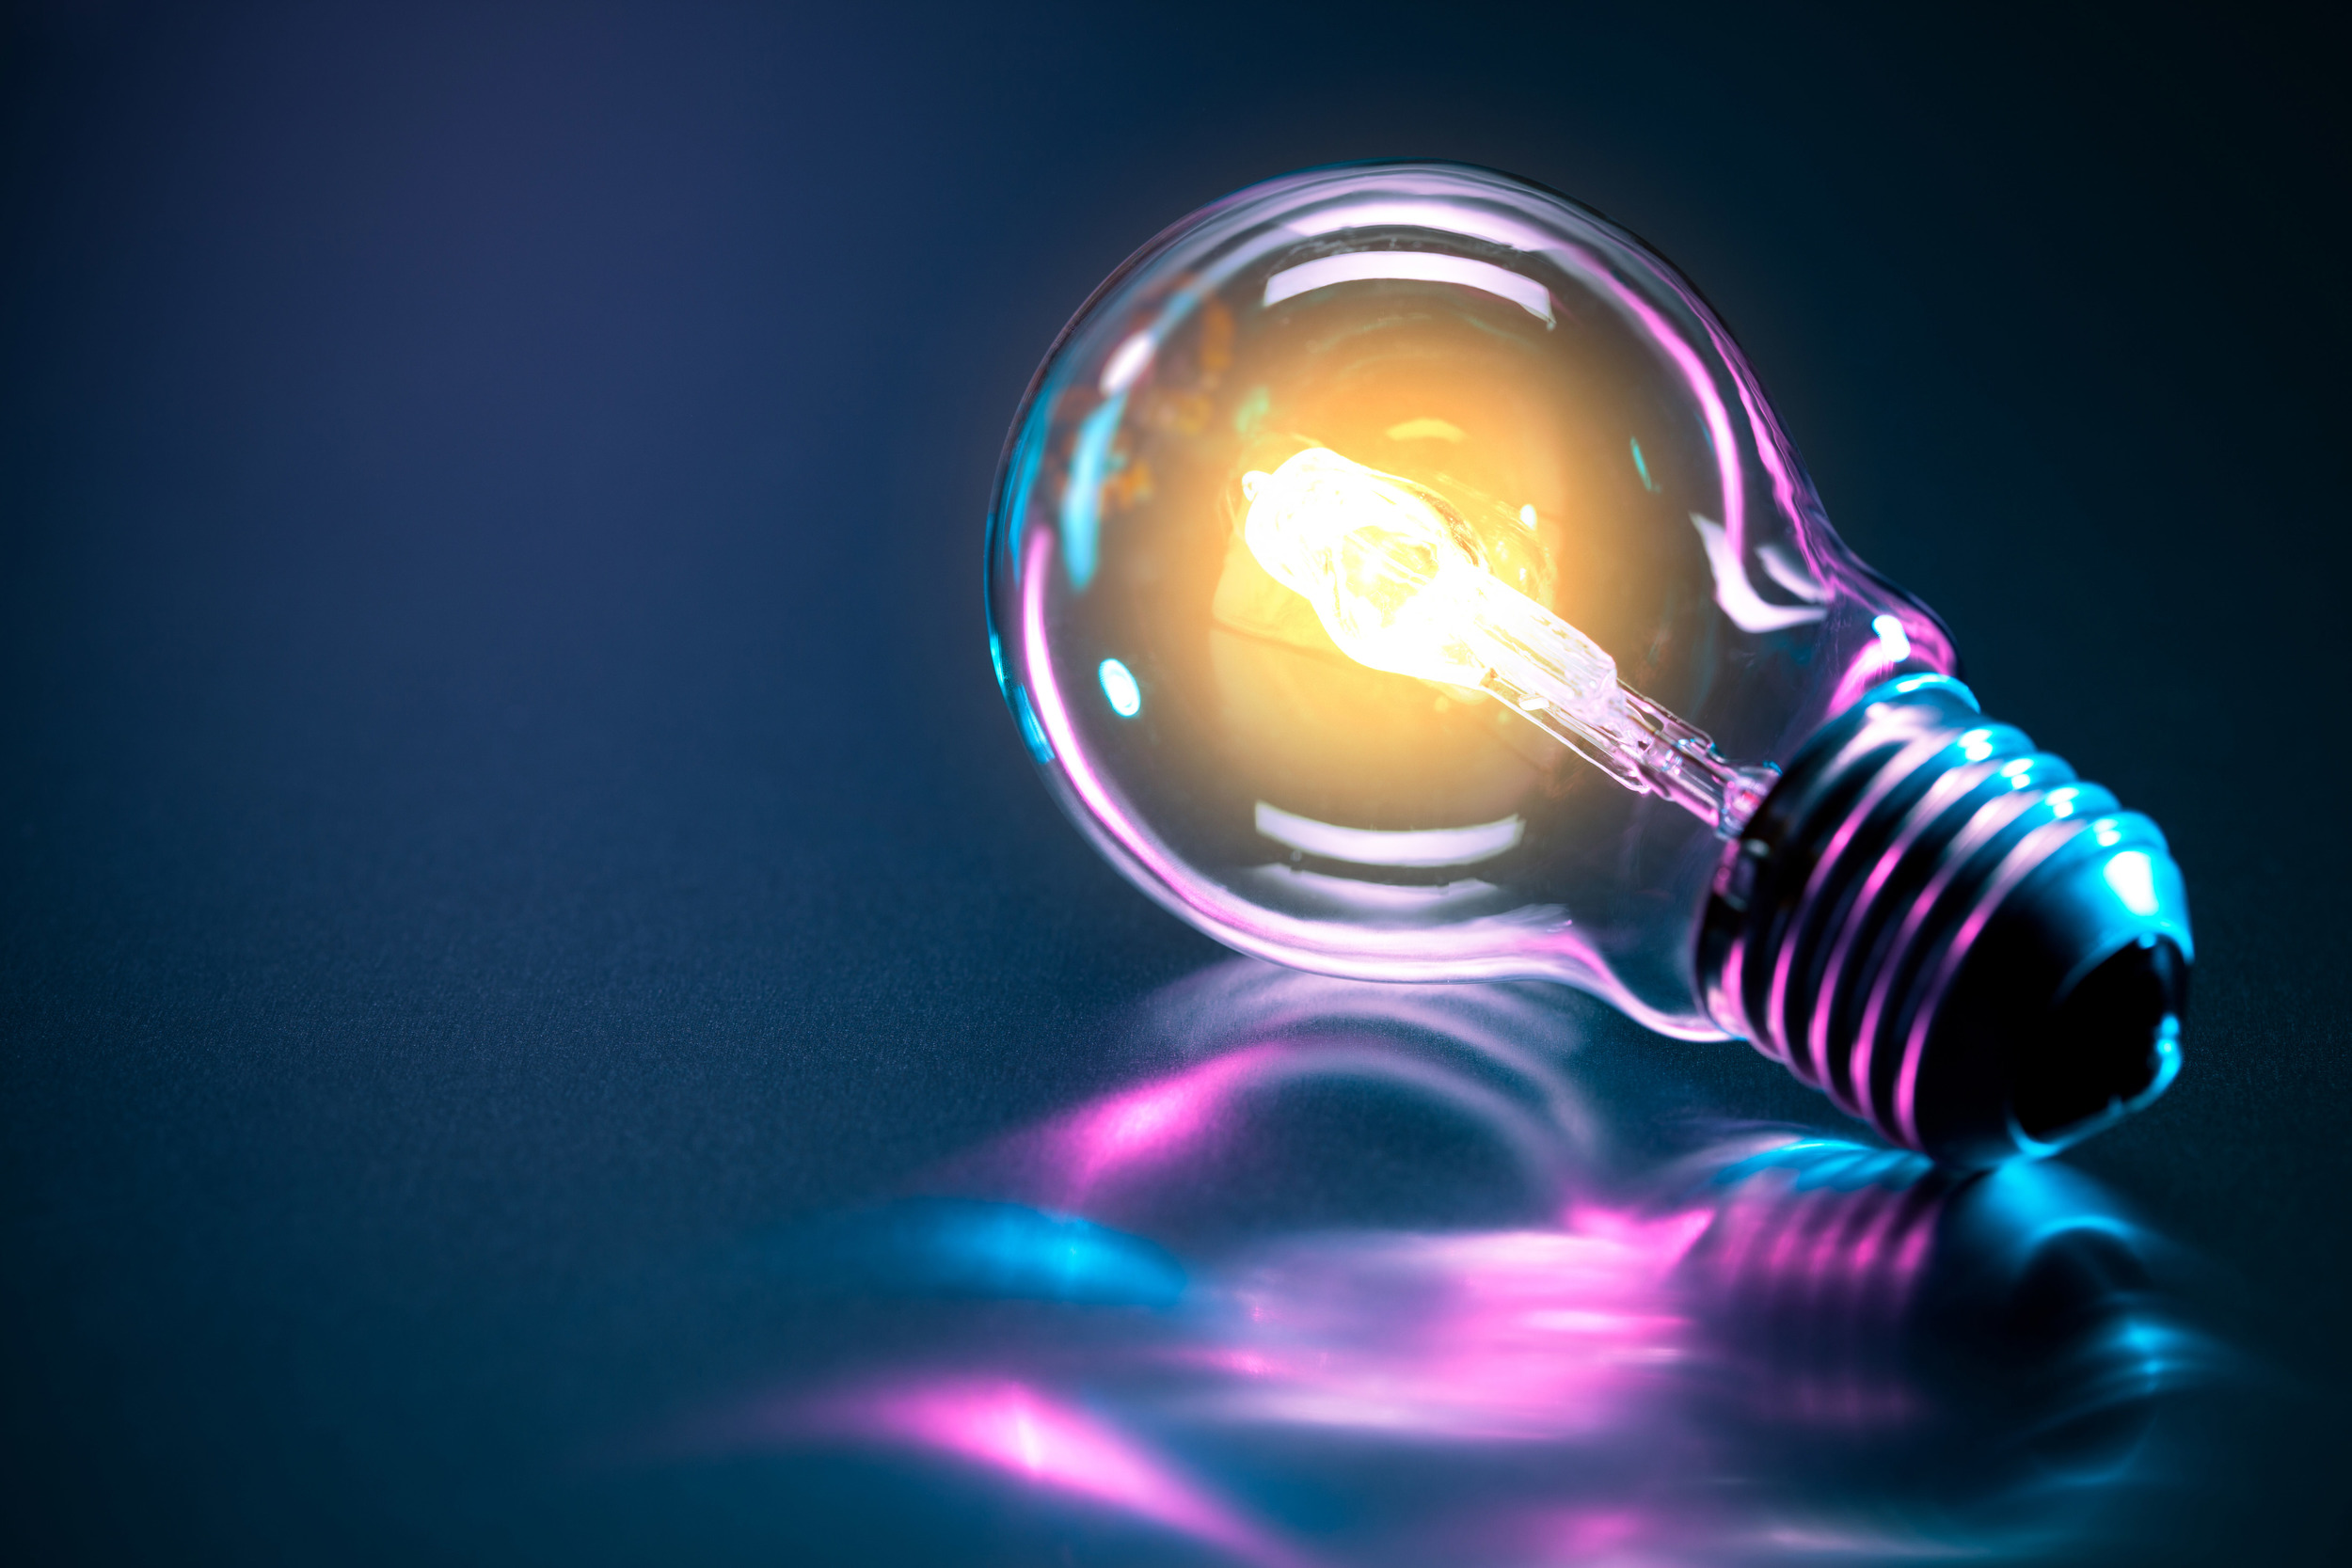 bulb-neon-reflection-electric-emitte-rendering-backgound.jpg